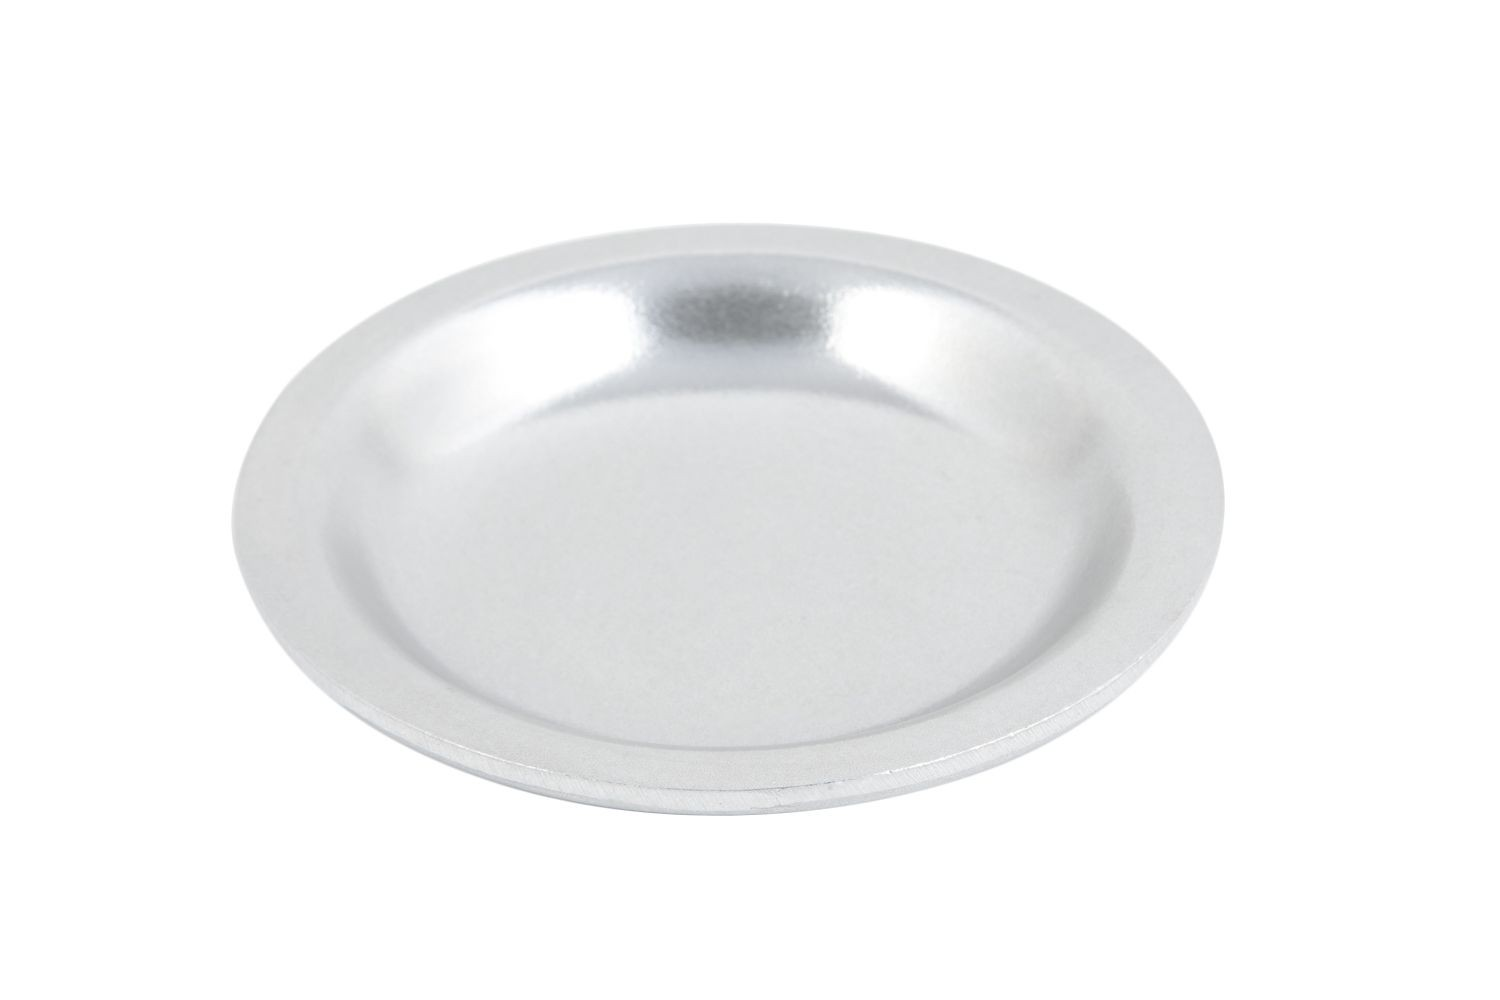 "Bon Chef 1080P Salad Plate, Pewter Glo 7 1/8"" Dia., Set of 6"